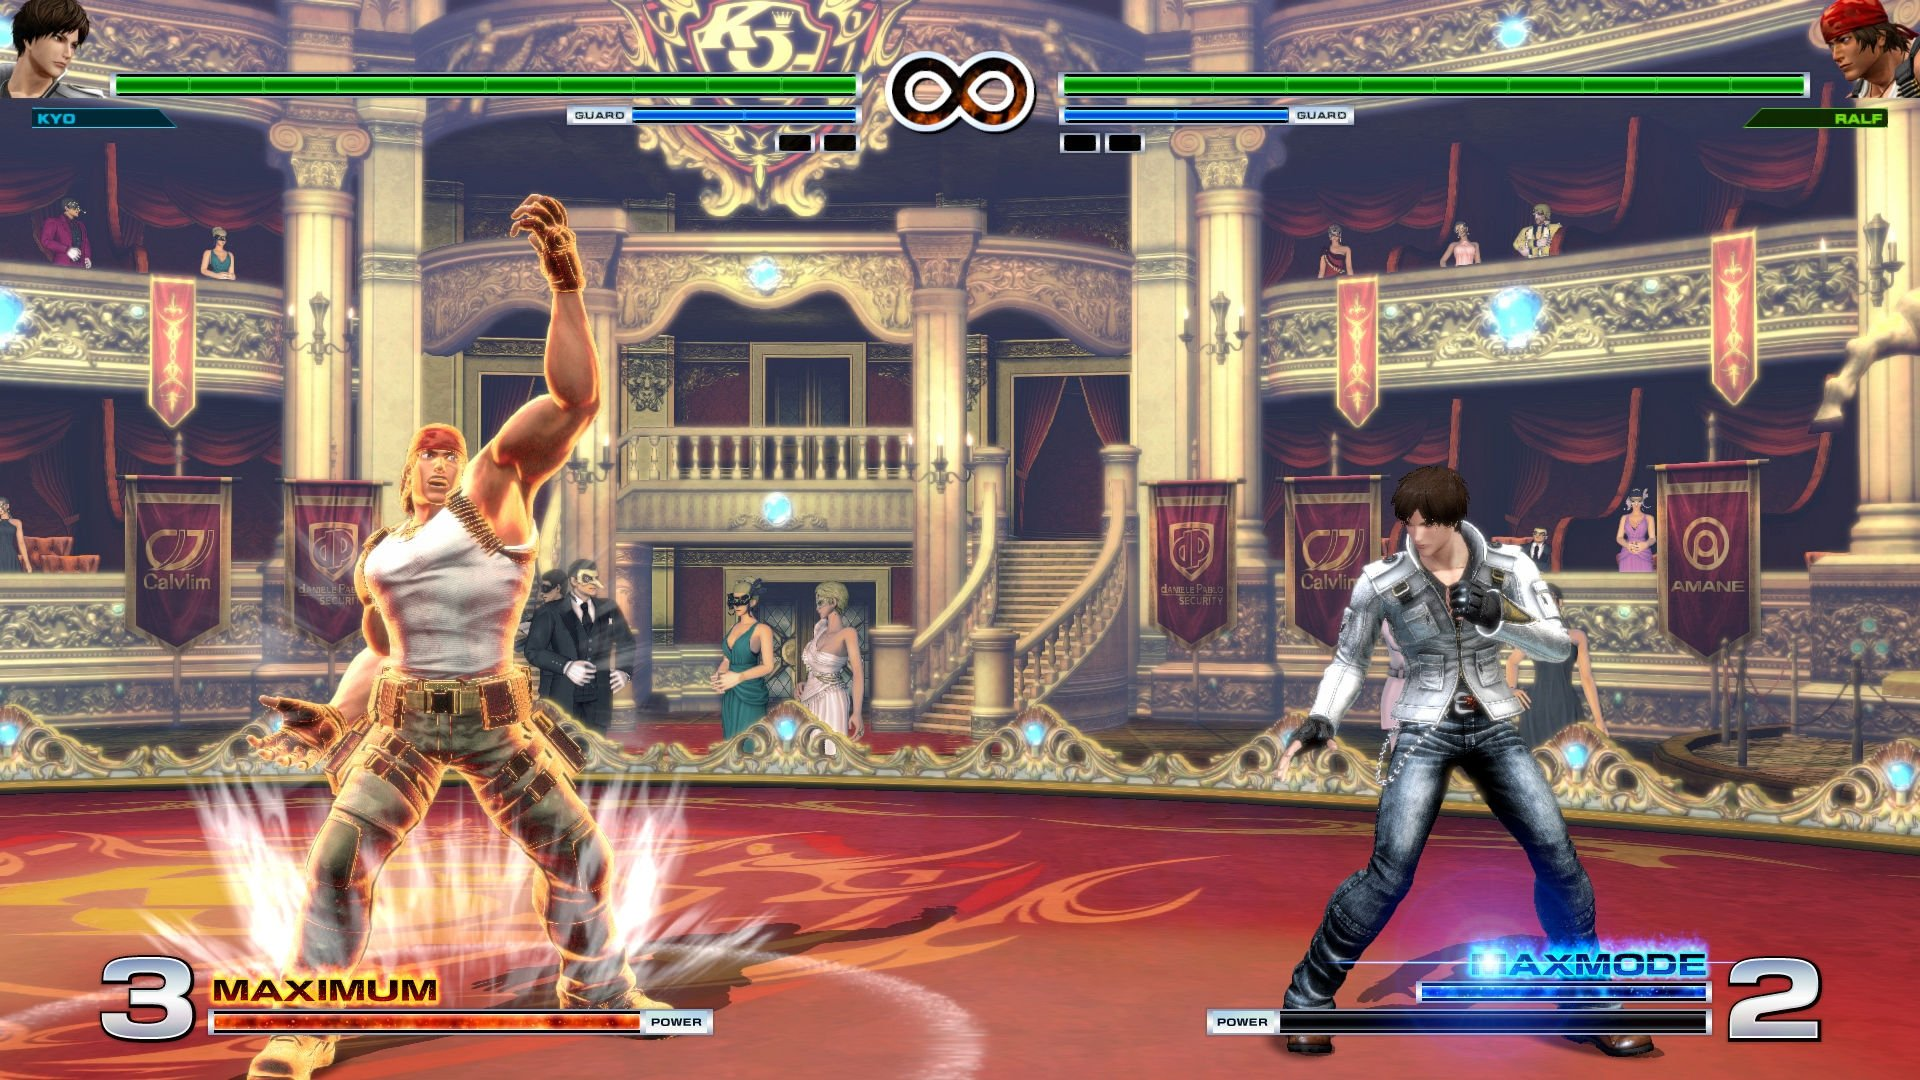 king_of_fighters_xiv-3371169.jpg